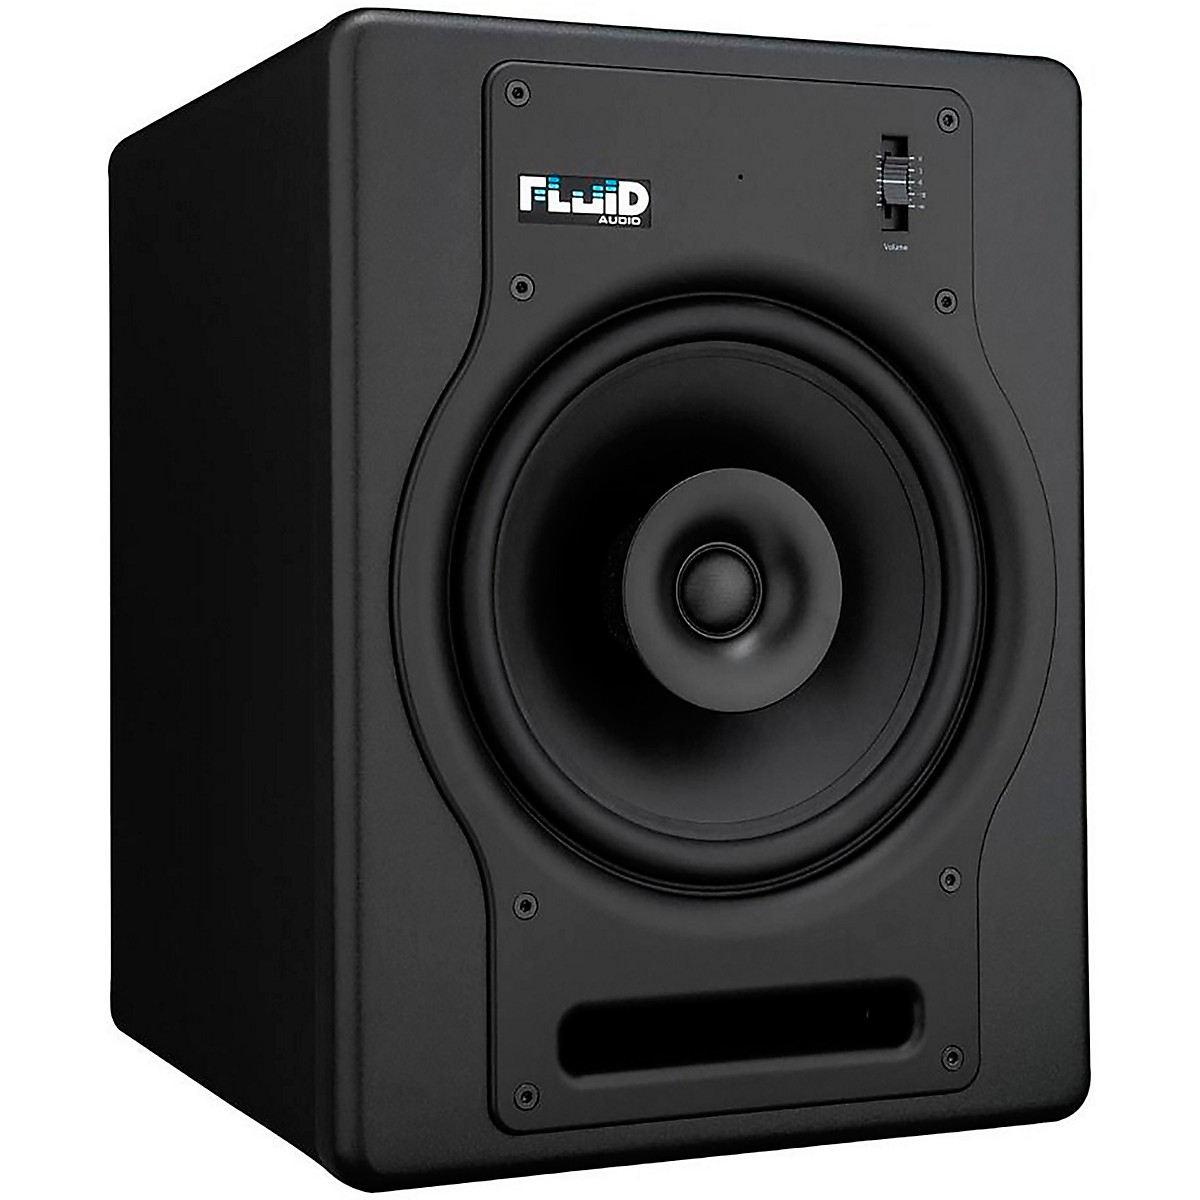 Fluid Audio FAFX8 Coaxial Studio Monitor